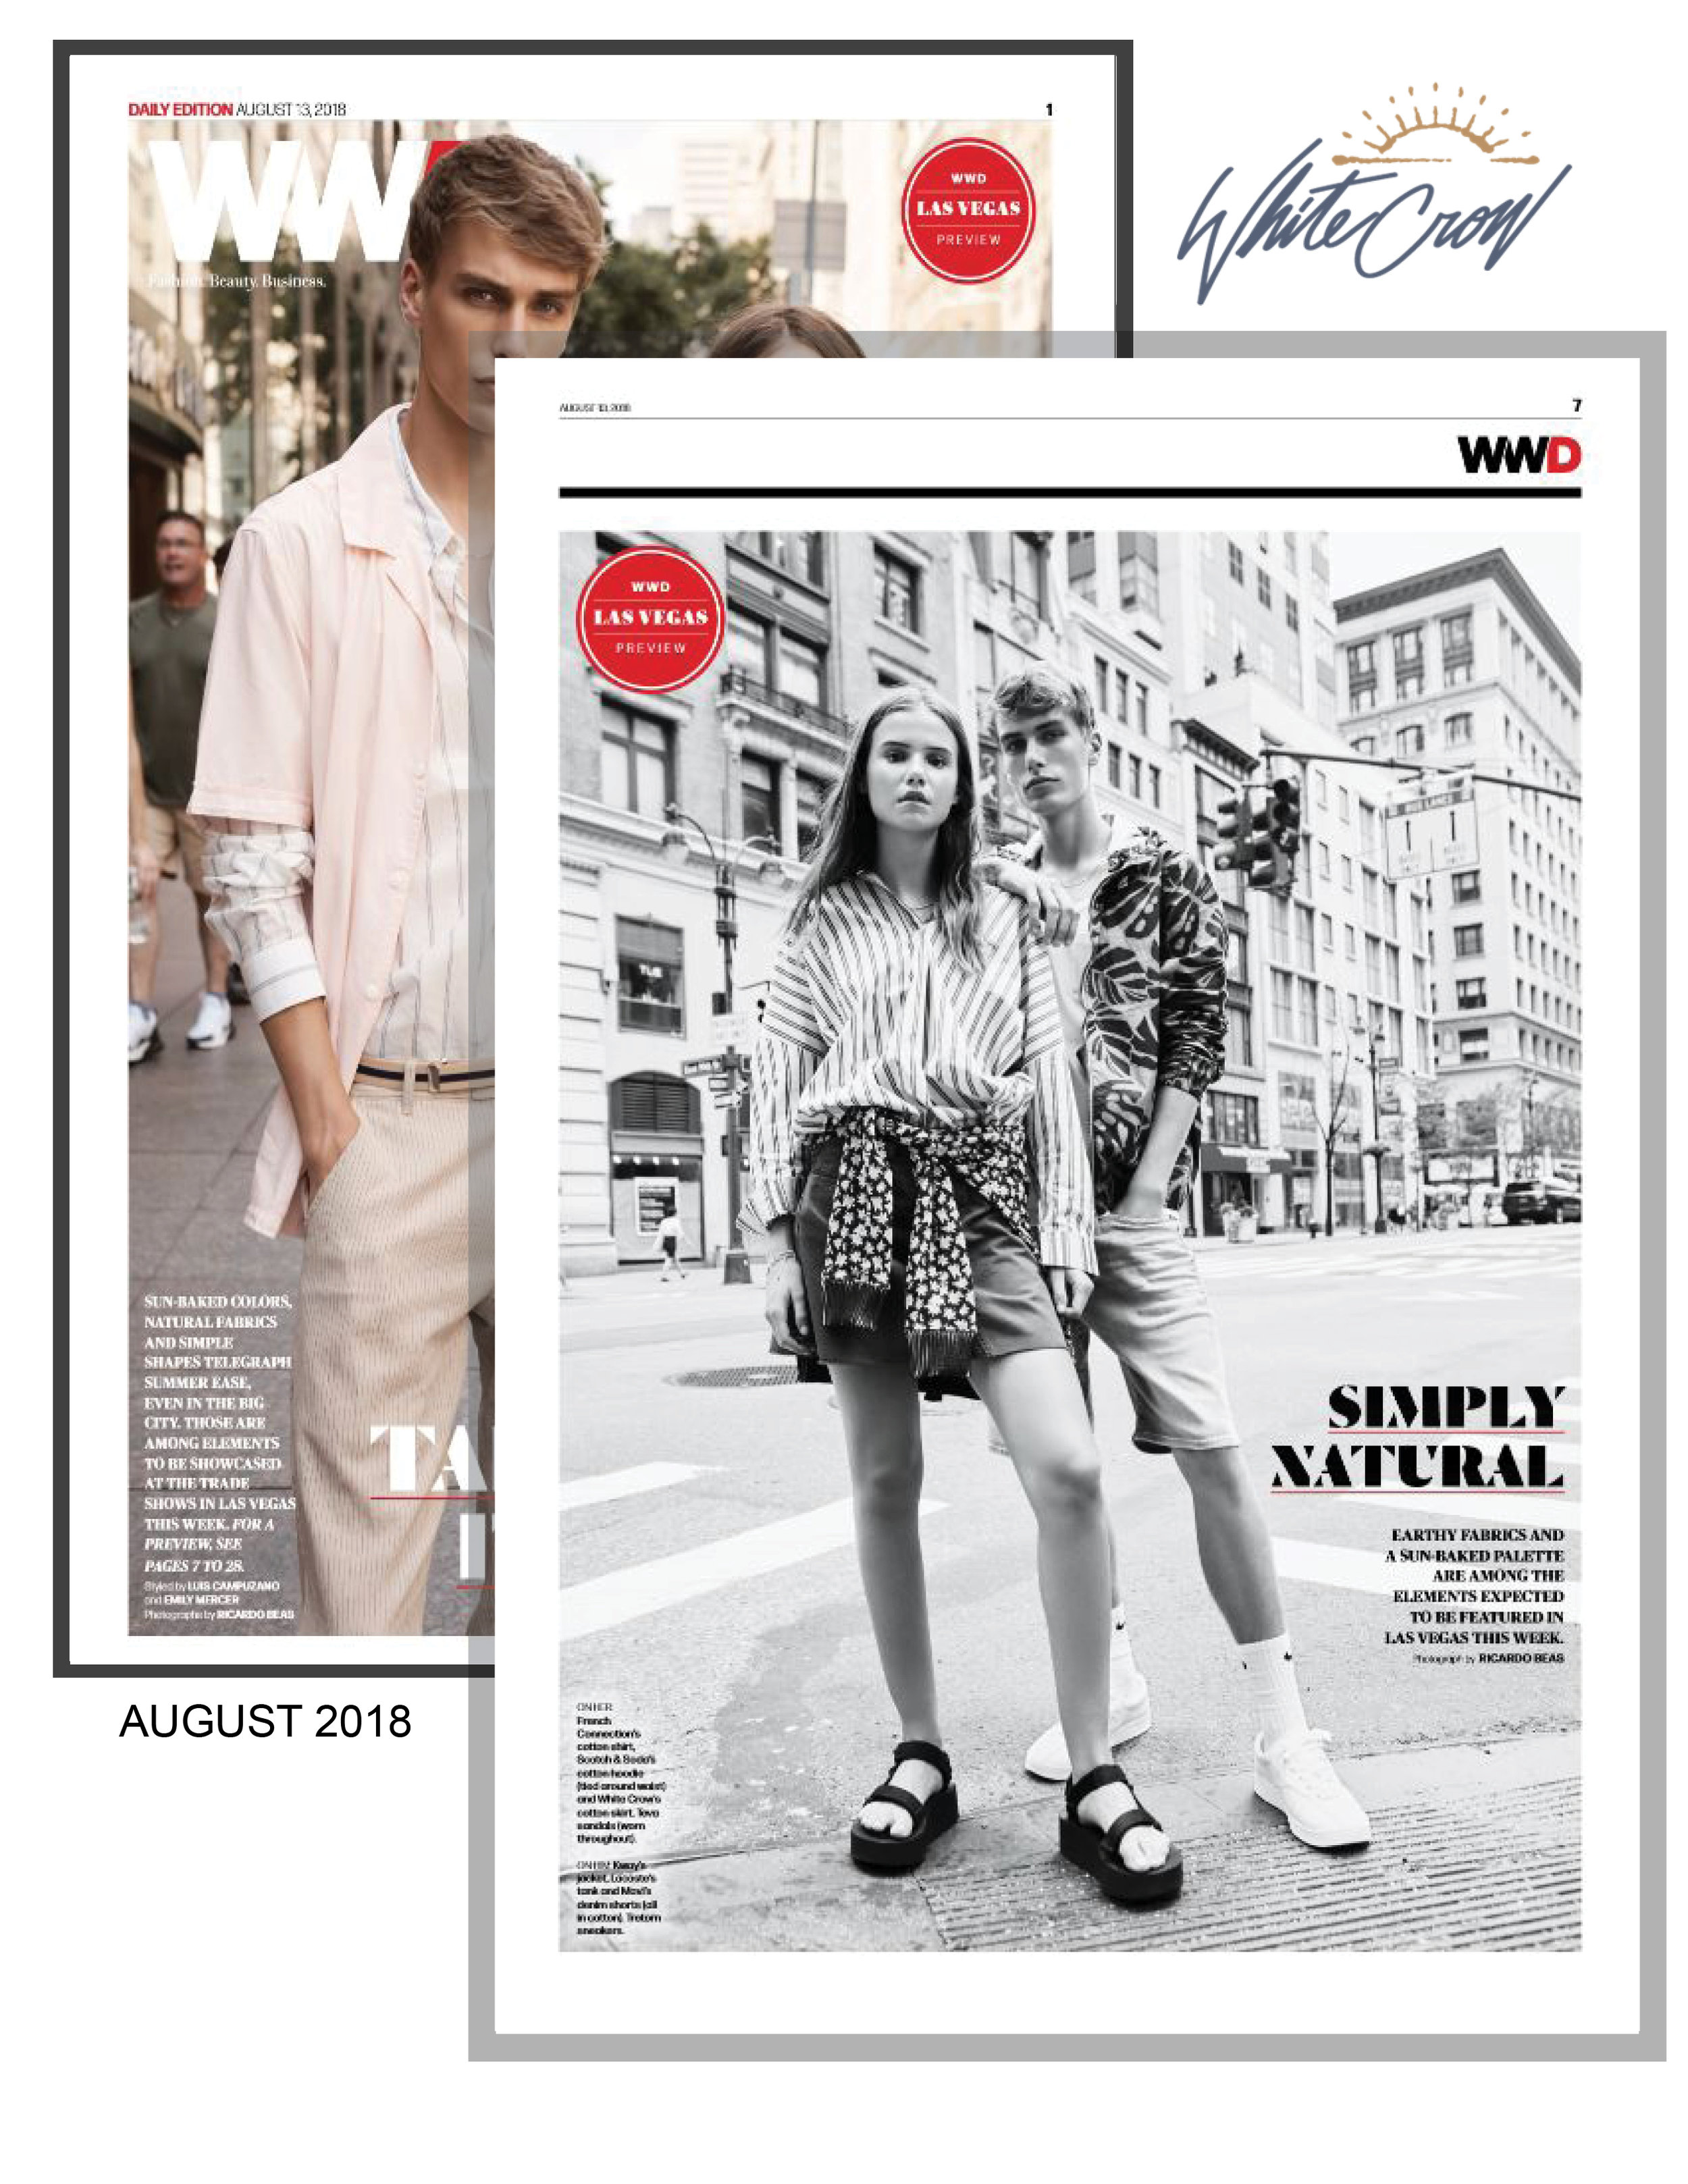 WhiteCrow_WWD_August2018.jpg